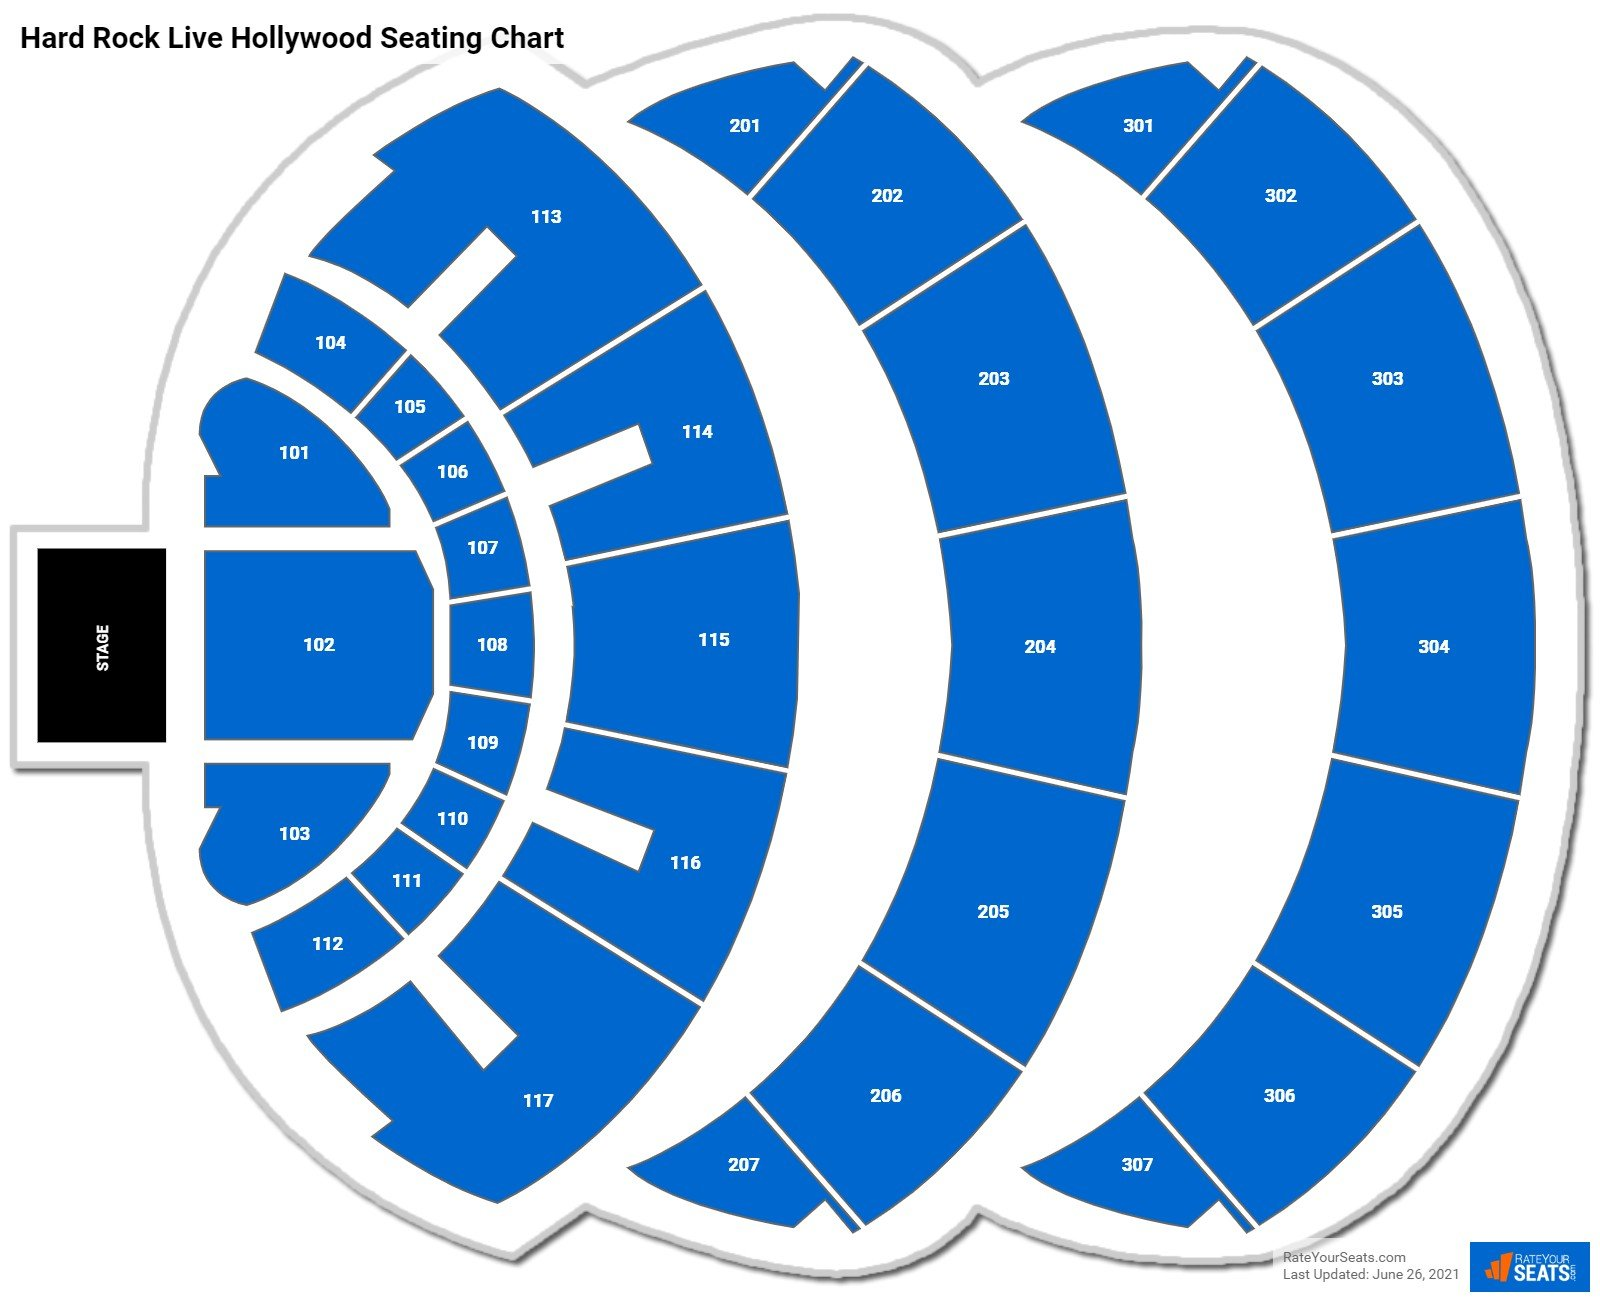 Hard Rock Live Hollywood Seating Chart